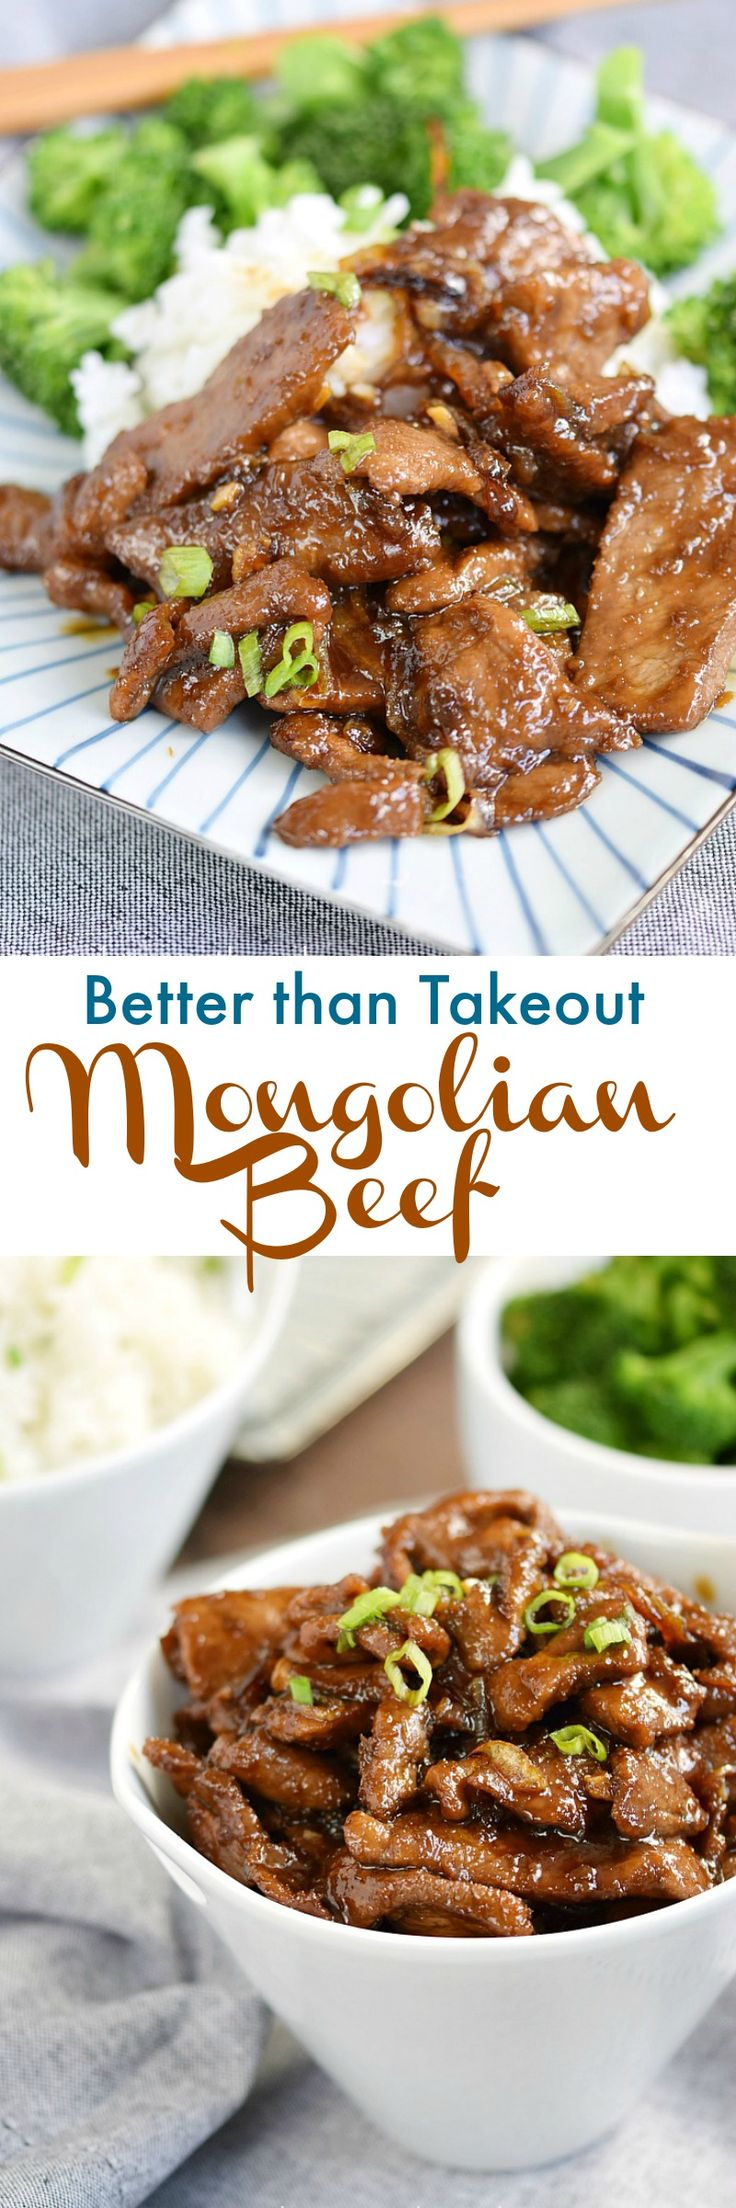 This Mongolian Beef is better than any local takeout. Thin slices or sirloin, tangy sauce, and sweet caramelized onions will leave you craving for more! cookingwithcurls.com